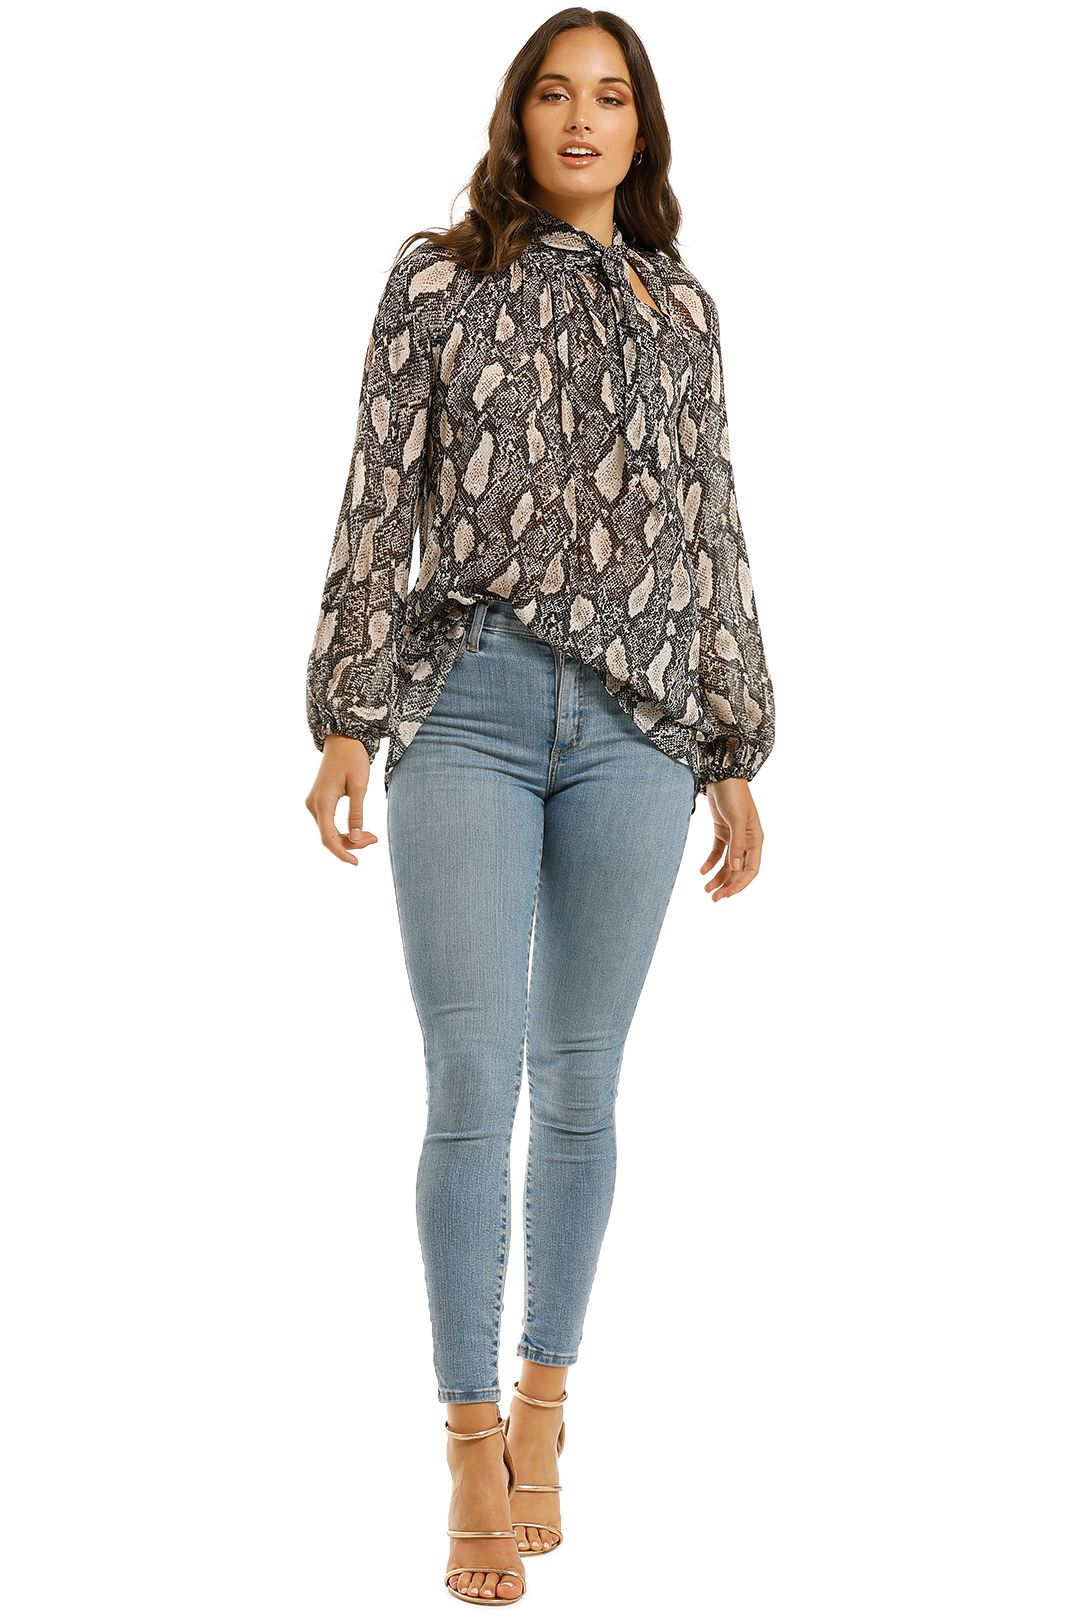 Kate-Sylvester-Lucy-Ls-Top-Pumice-Front